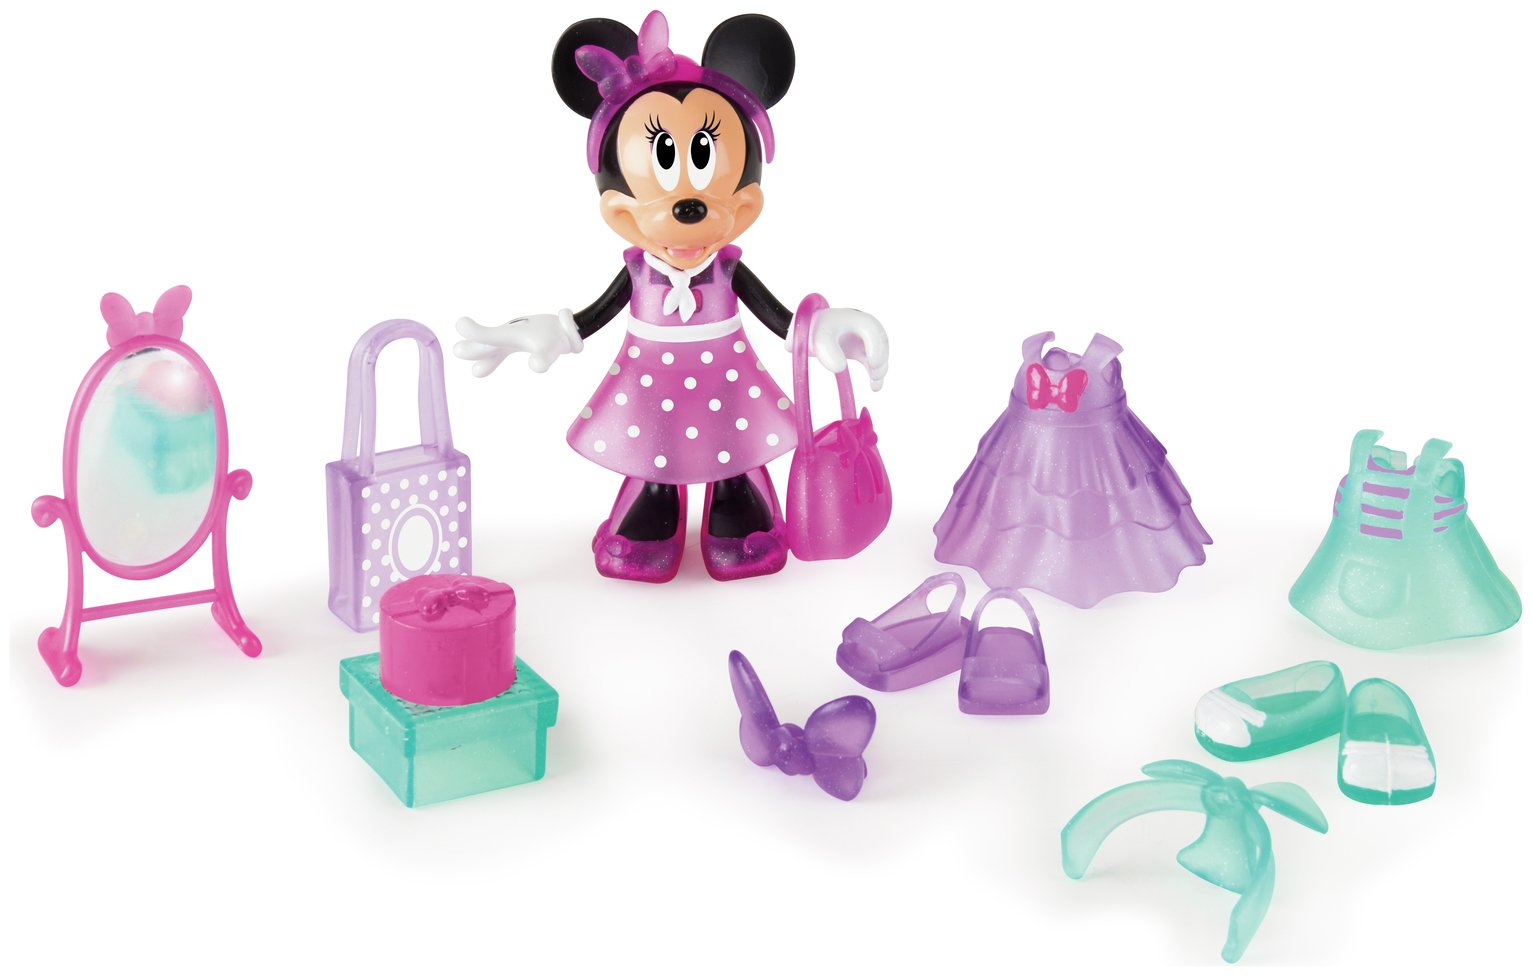 Minnie Fashion Dolls